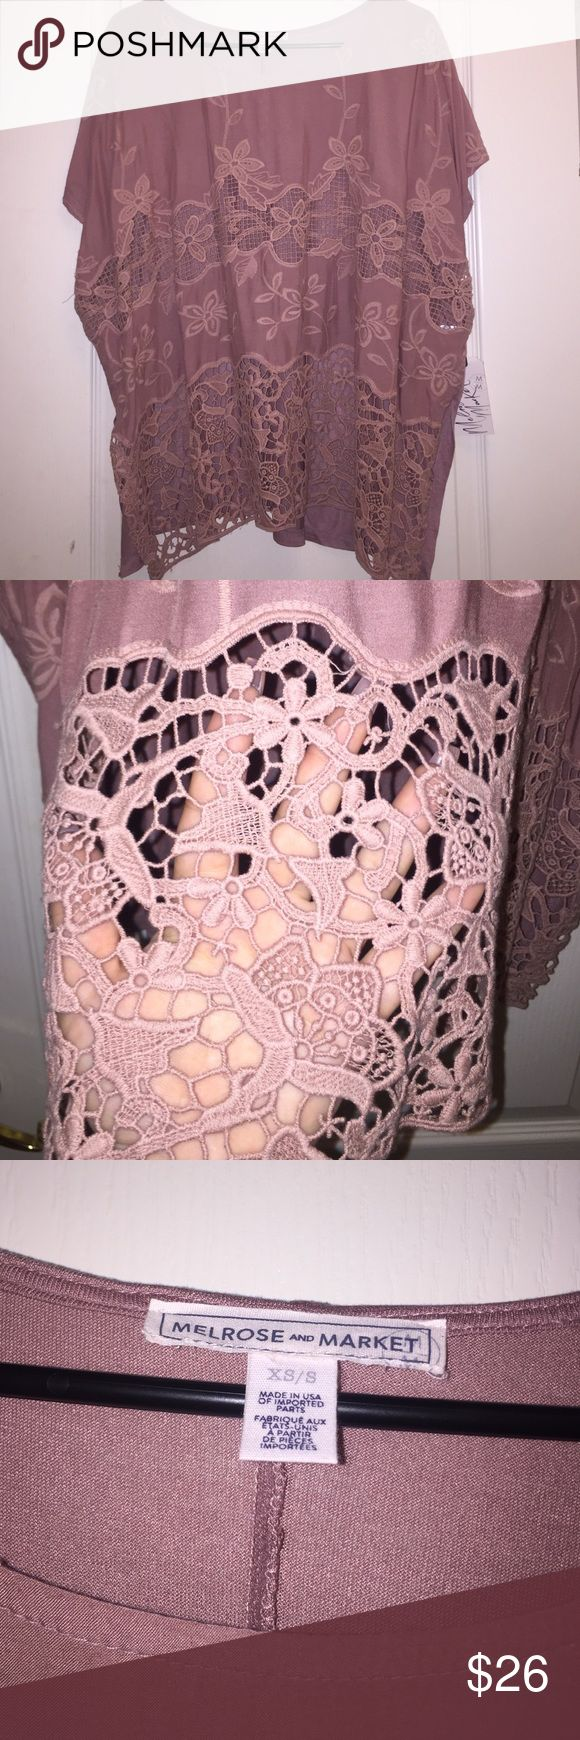 NWT Melrose and Market Pink Lace Top brand new with tag, Melrose and Market dark pinkish lace detail top, the lace parts on the front are see-through but not very noticeable when it's worn, also has small slits on the sides of the top. runs a little big. Melrose and Market  Tops